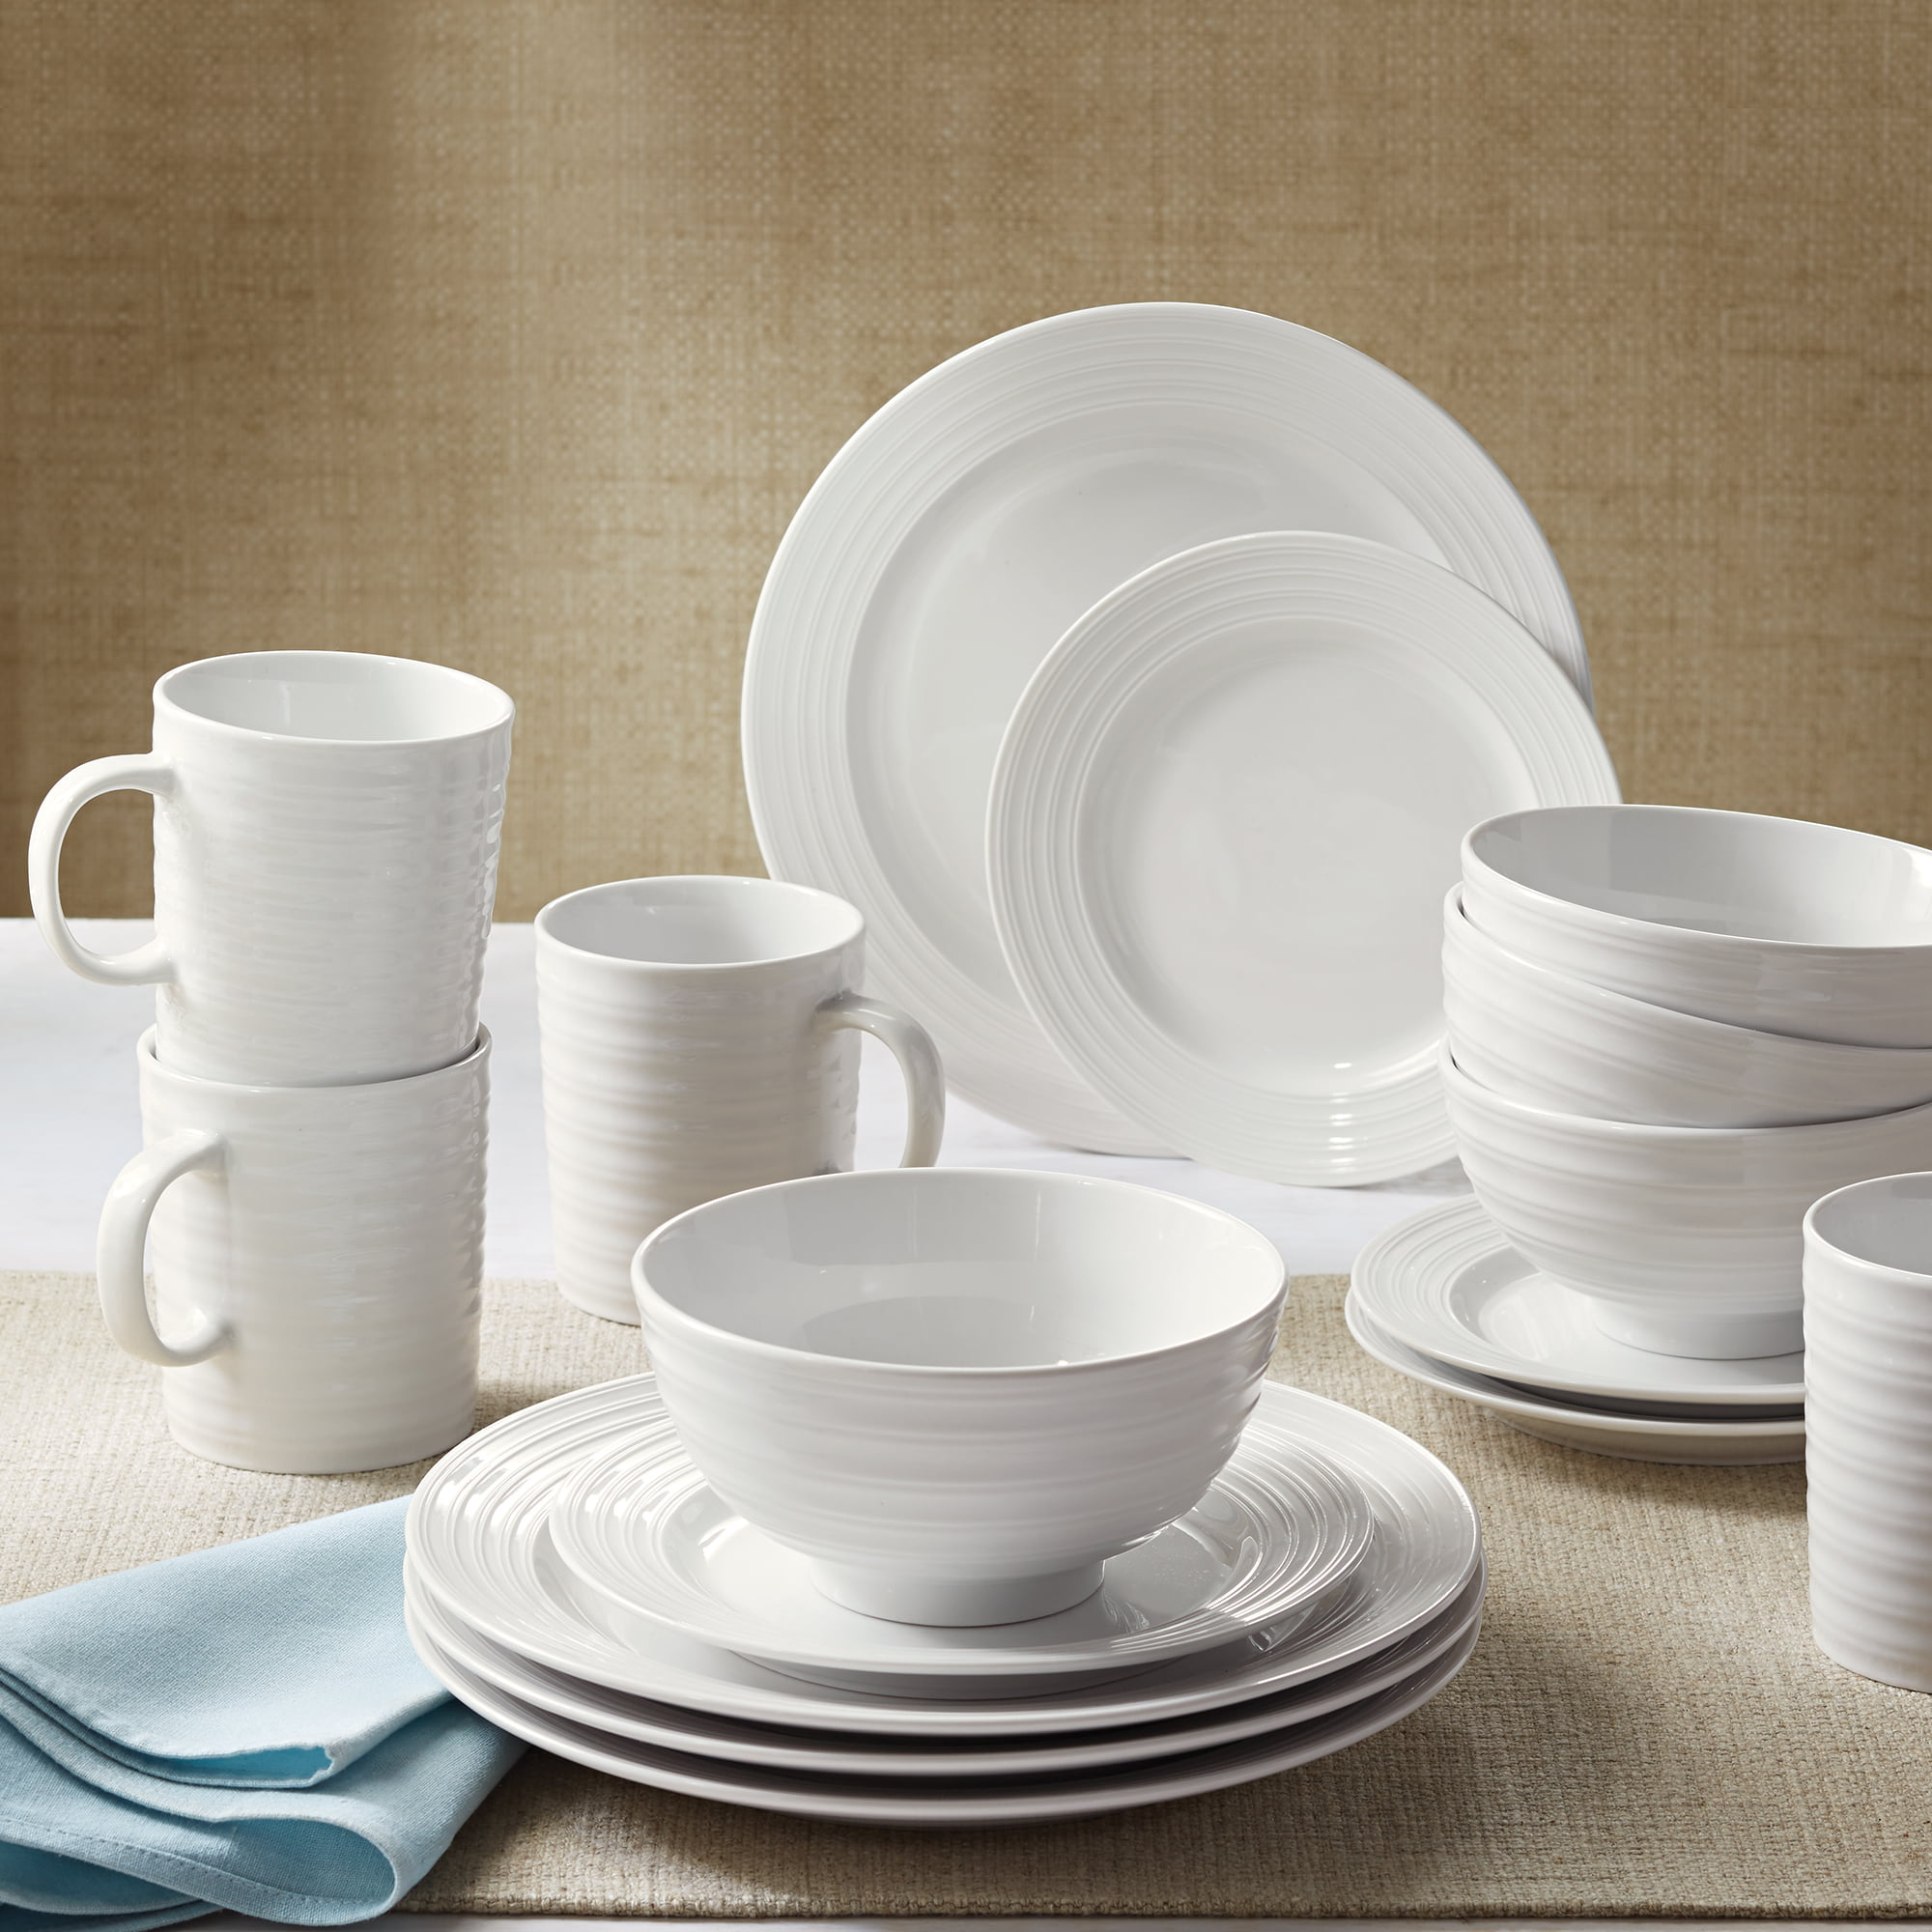 better homes and gardens anniston porcelain  piece dinnerware  - better homes and gardens anniston porcelain  piece dinnerware set white walmartcom